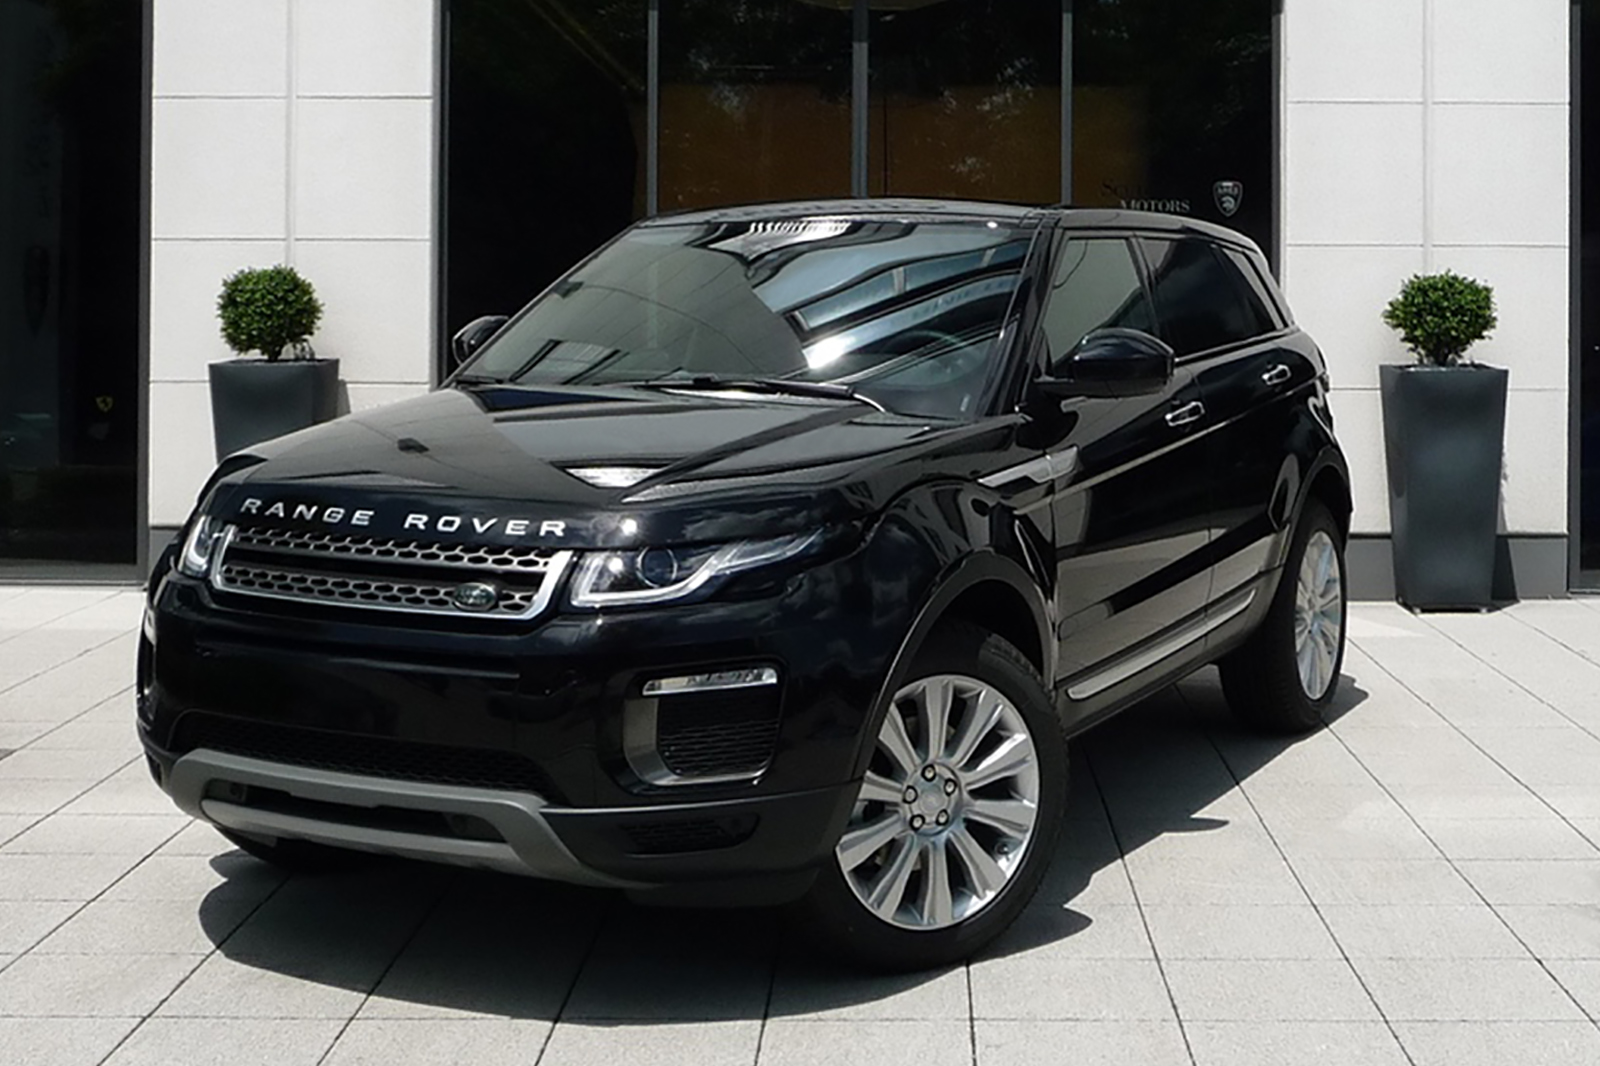 AIL Land Rover Range Rover Evoque HSE 2.0 TD4  4